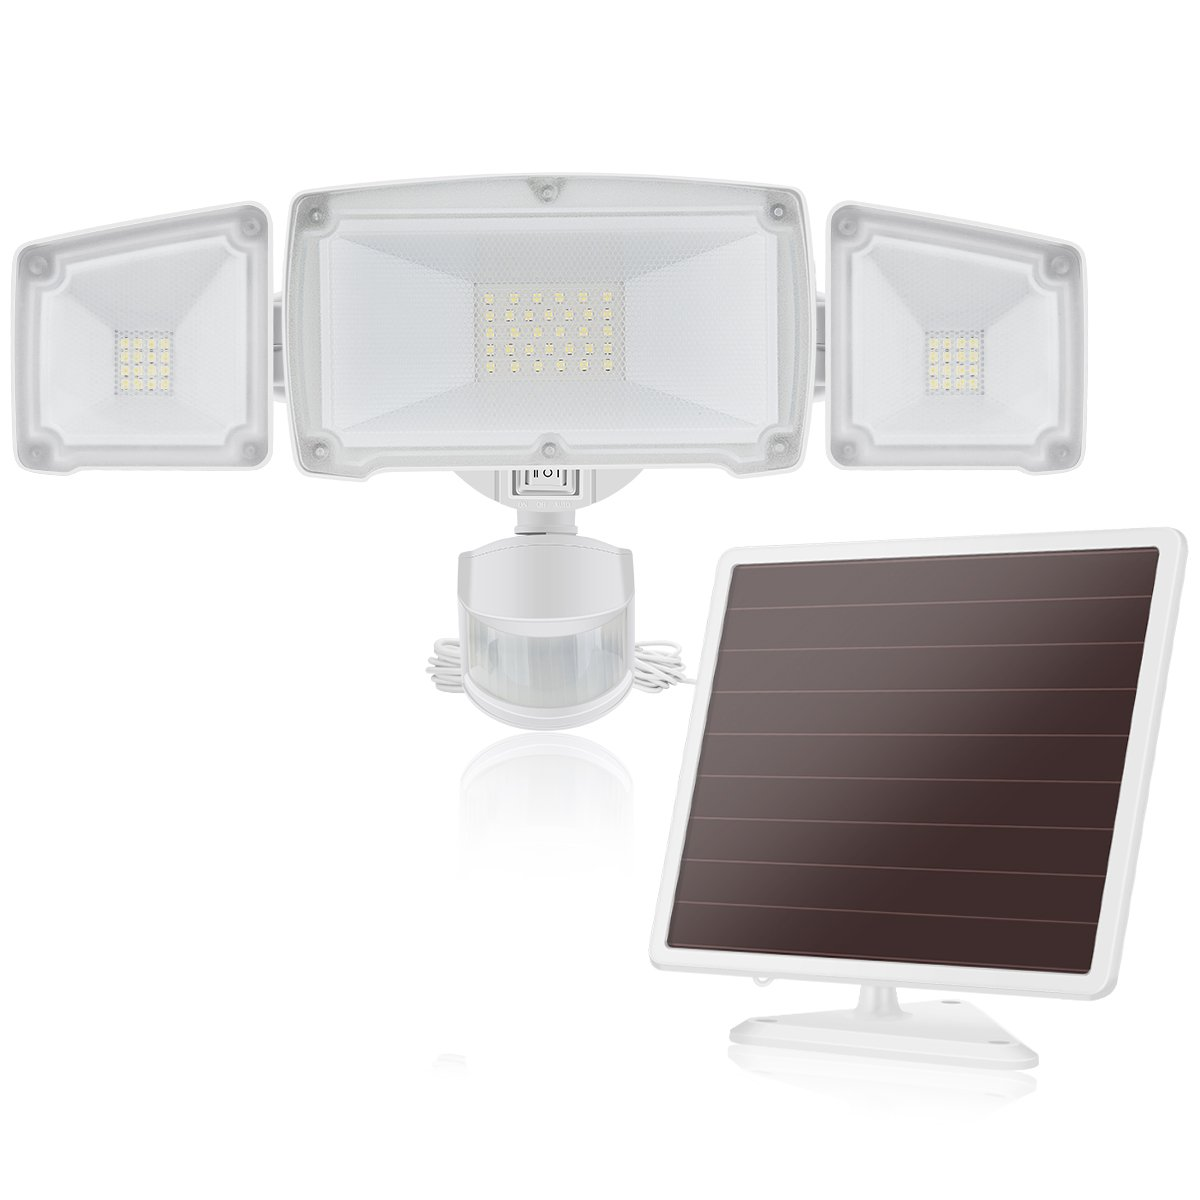 Solar LED Security Light, SOLLA Outdoor Motion Sensor Flood Light, 1500LM 5000K, IP65 Waterproof, 3 Adjustable Heads Light with 2 Modes Automatic and Permanent on, for Entryways, Patio, Yard, Garage